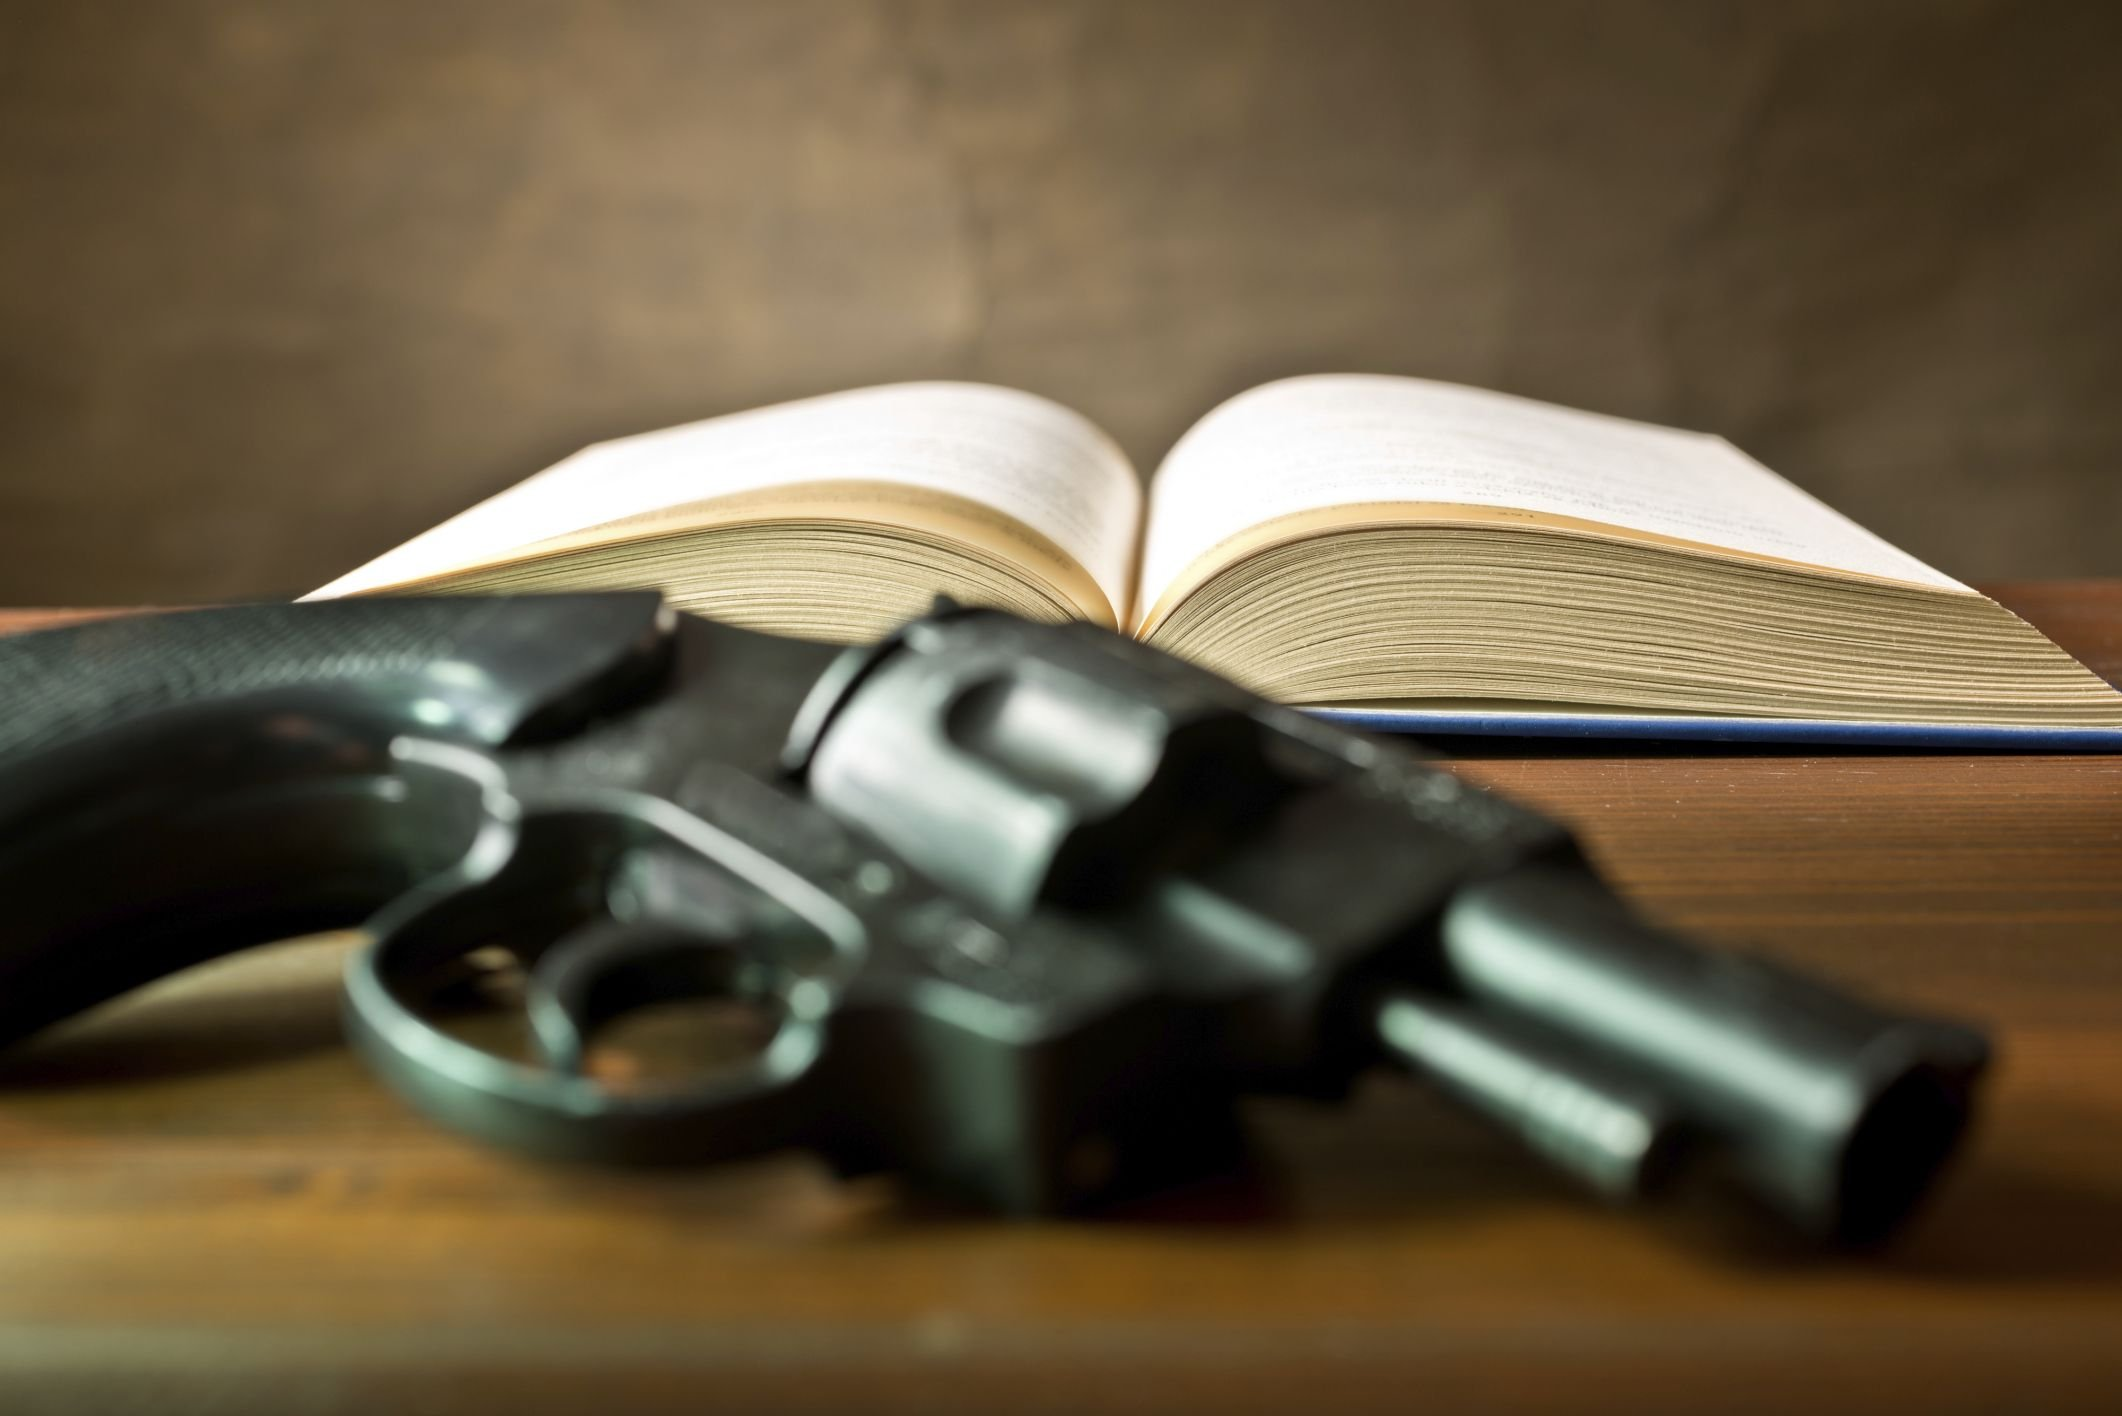 guns-should-nt-replace-books-1434962891-3036